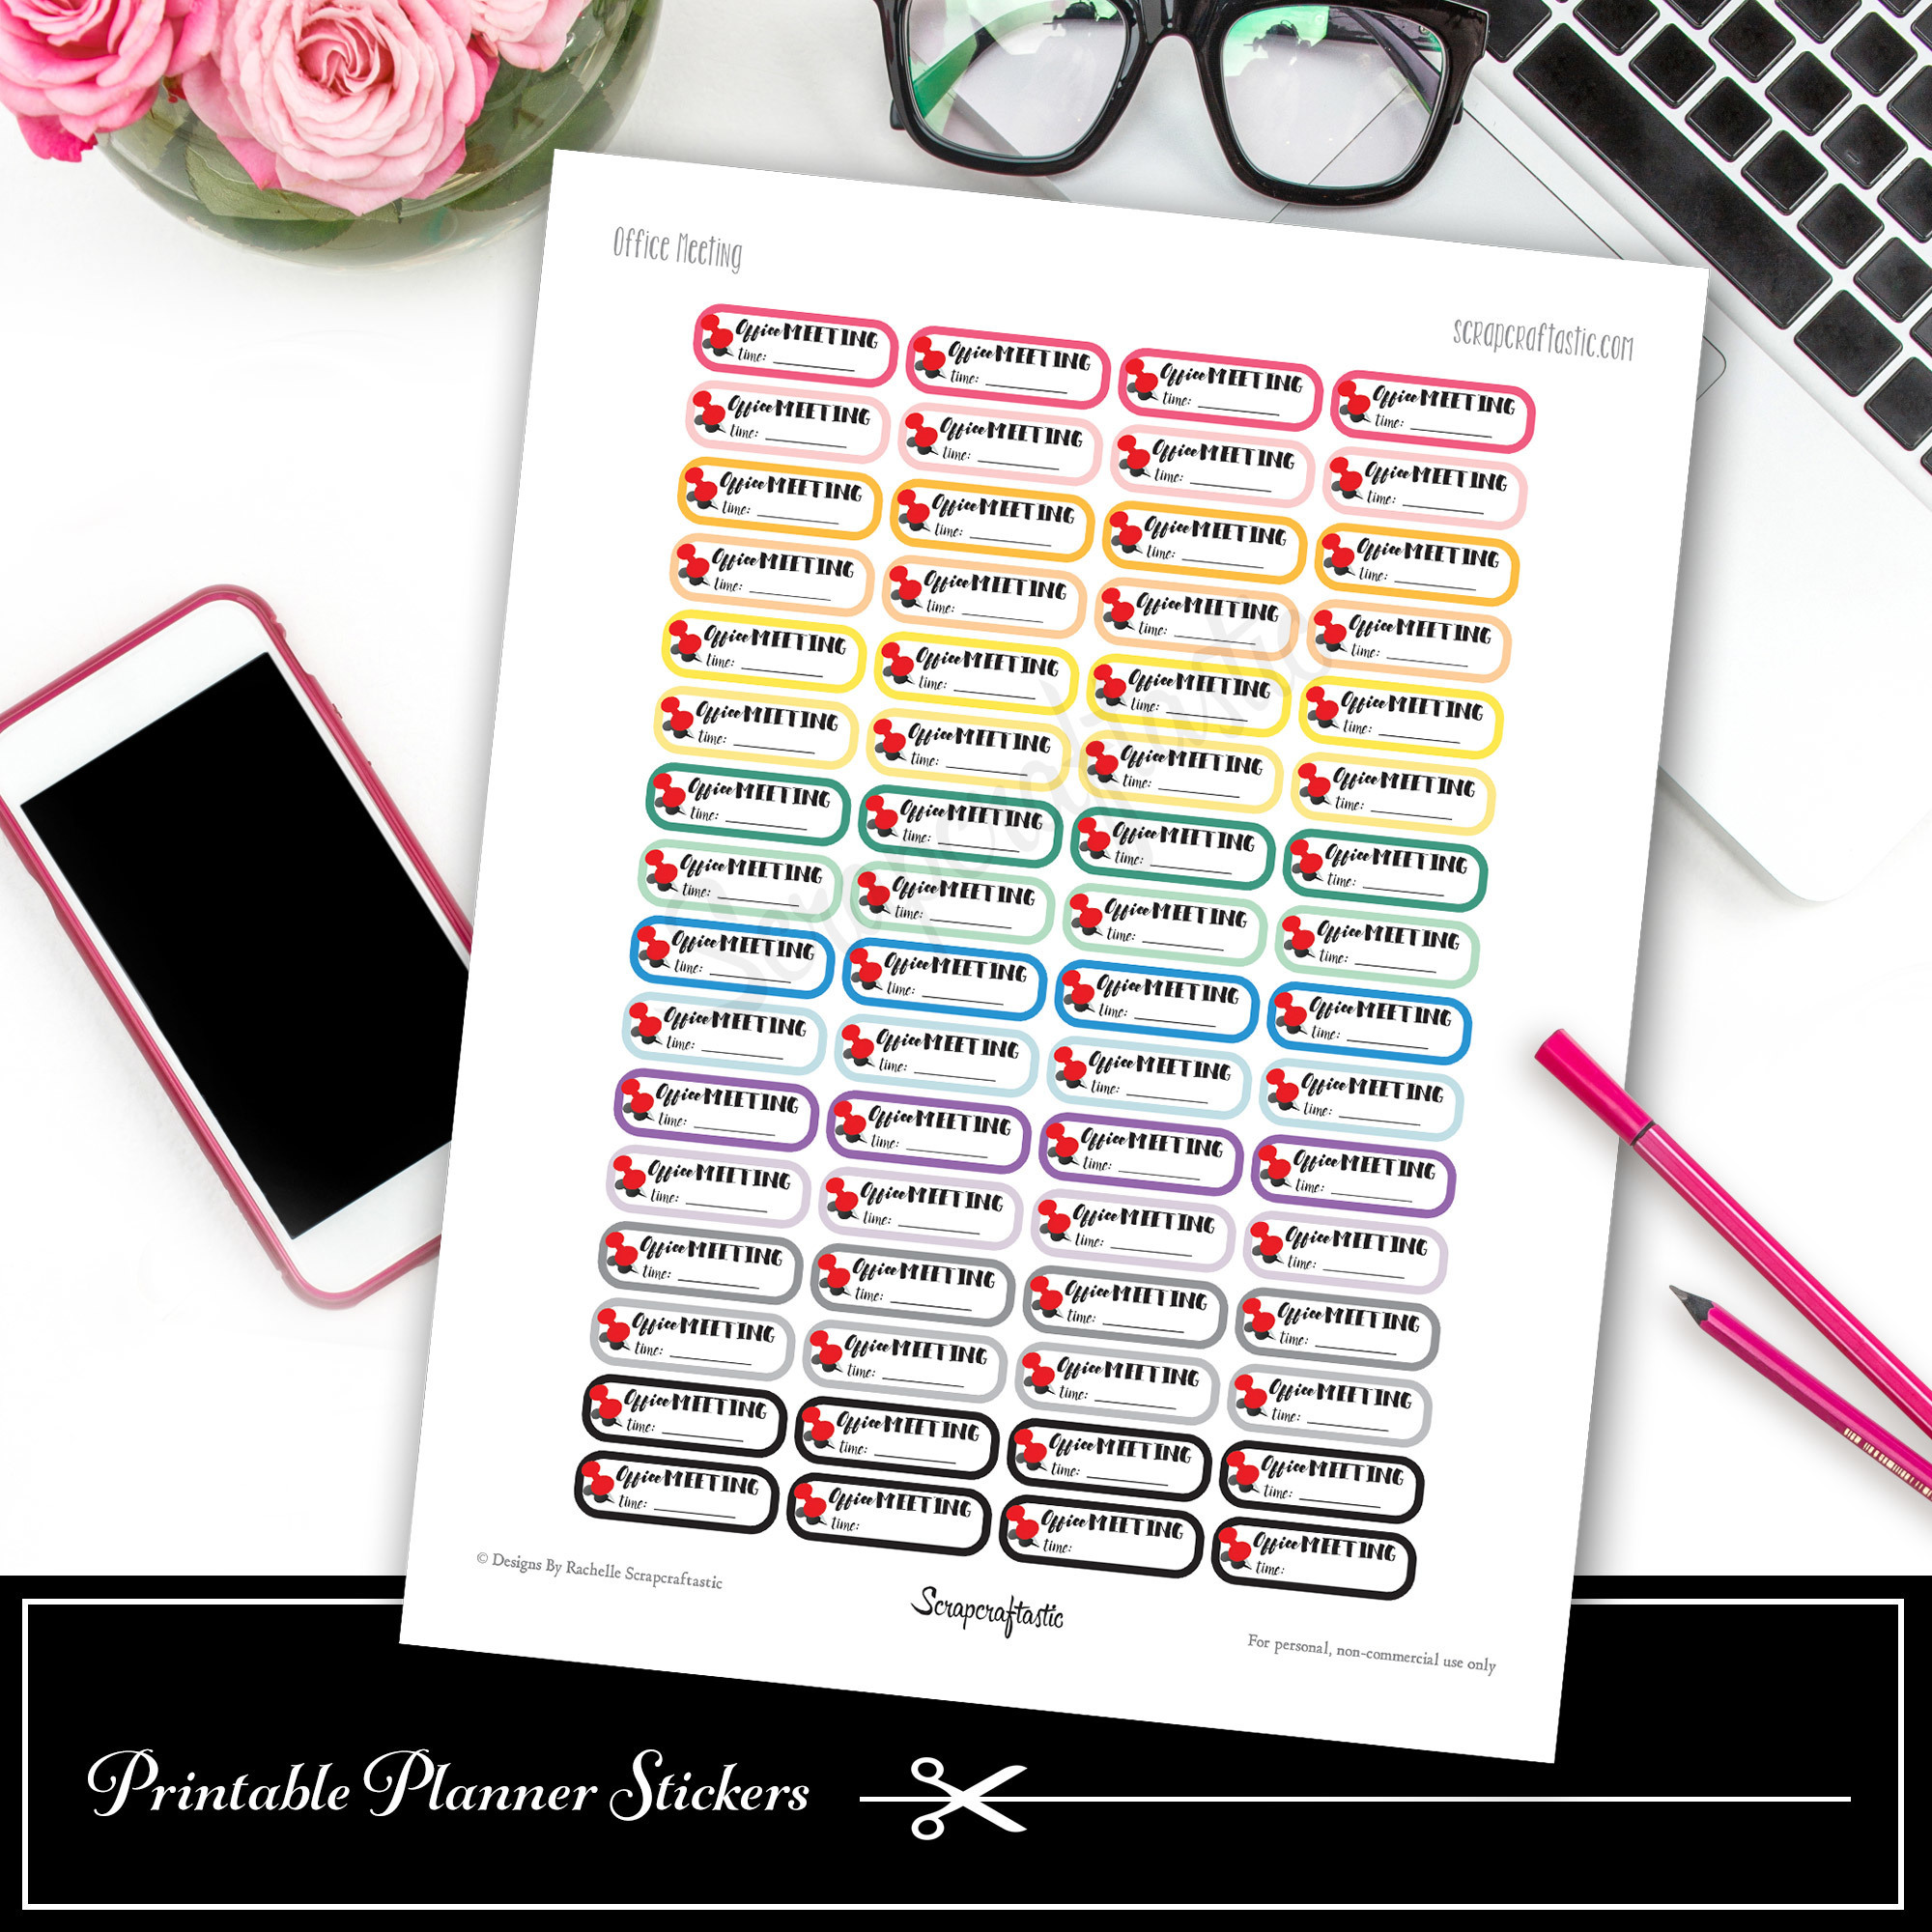 Office Meeting Printable Planner Stickers - Quarter Box 03004